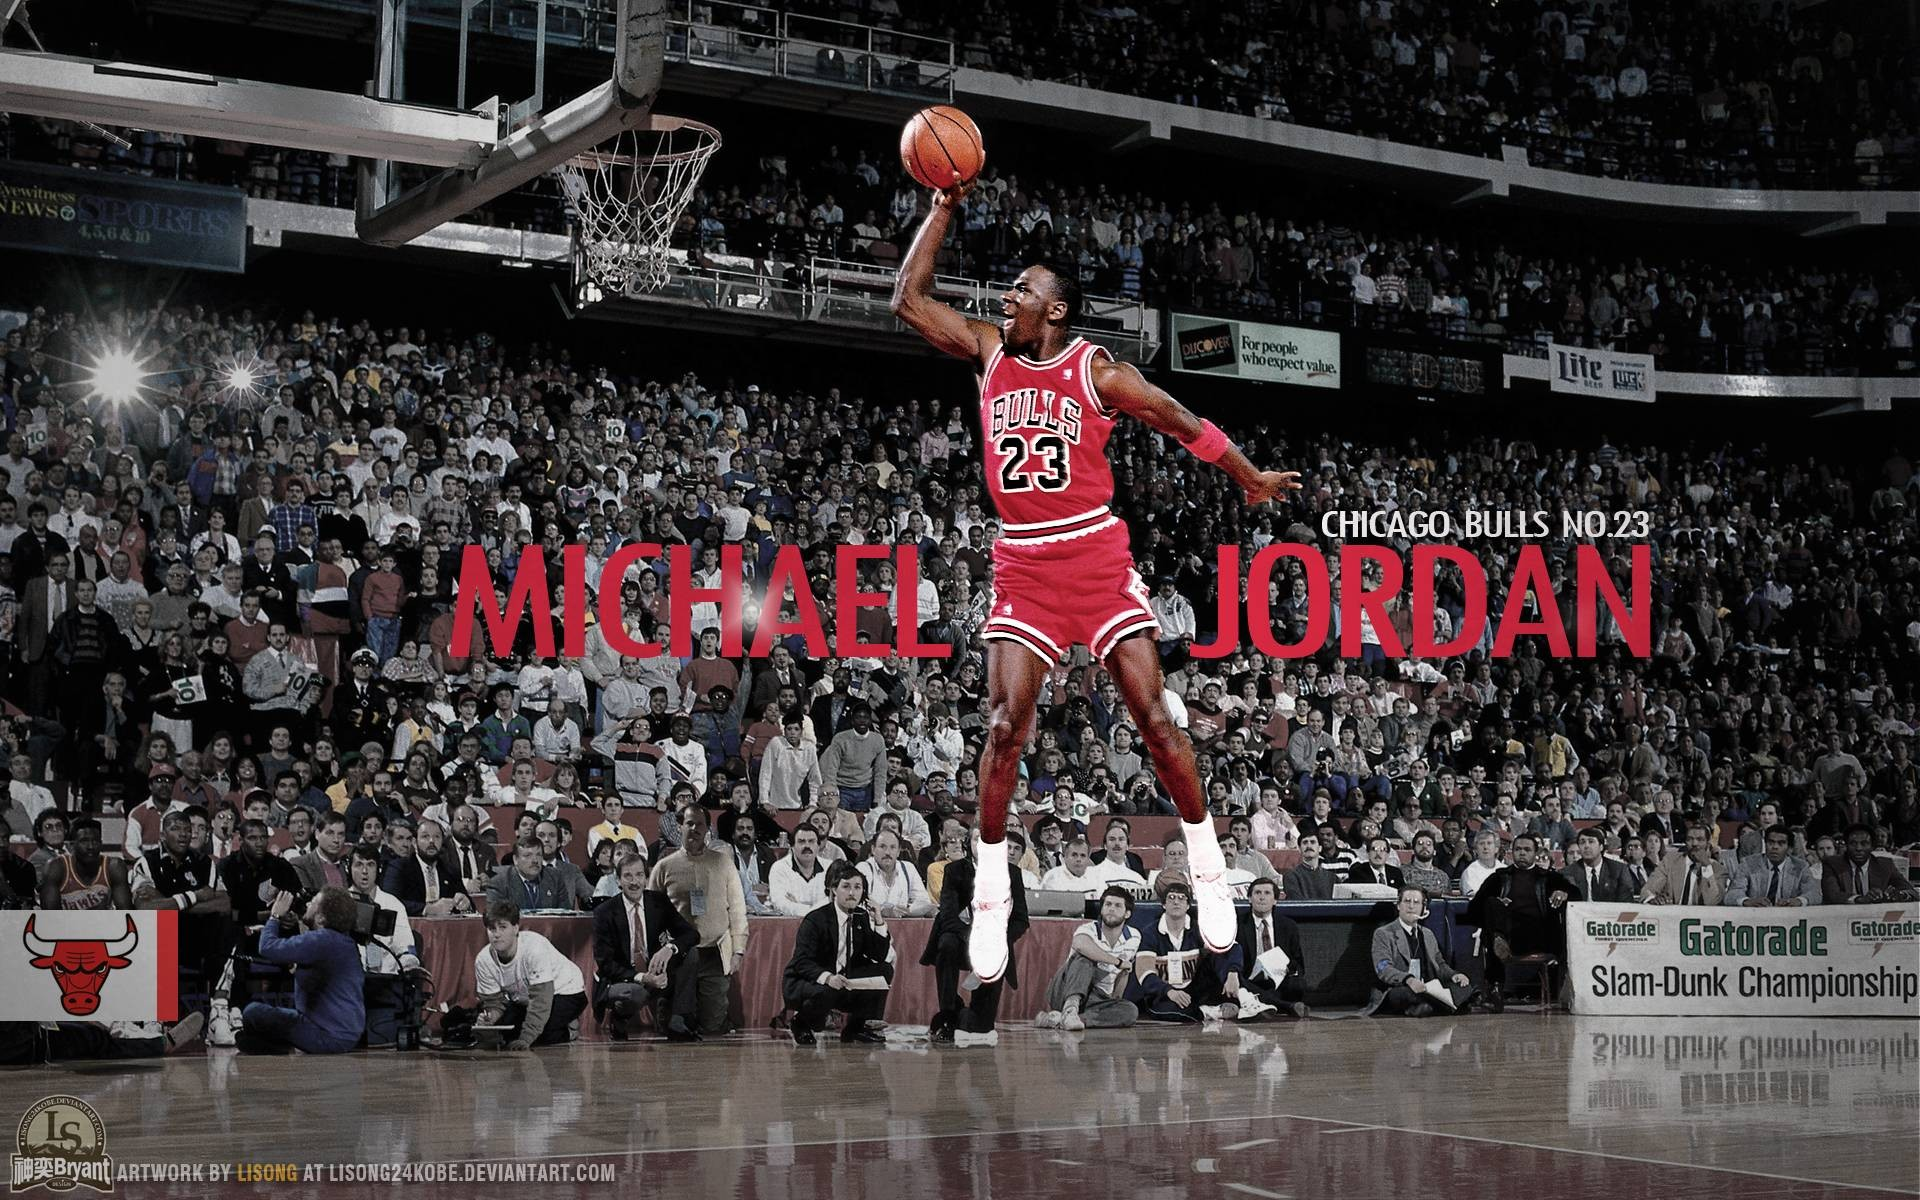 Michael Jordan wallpaper Download free awesome High Resolution